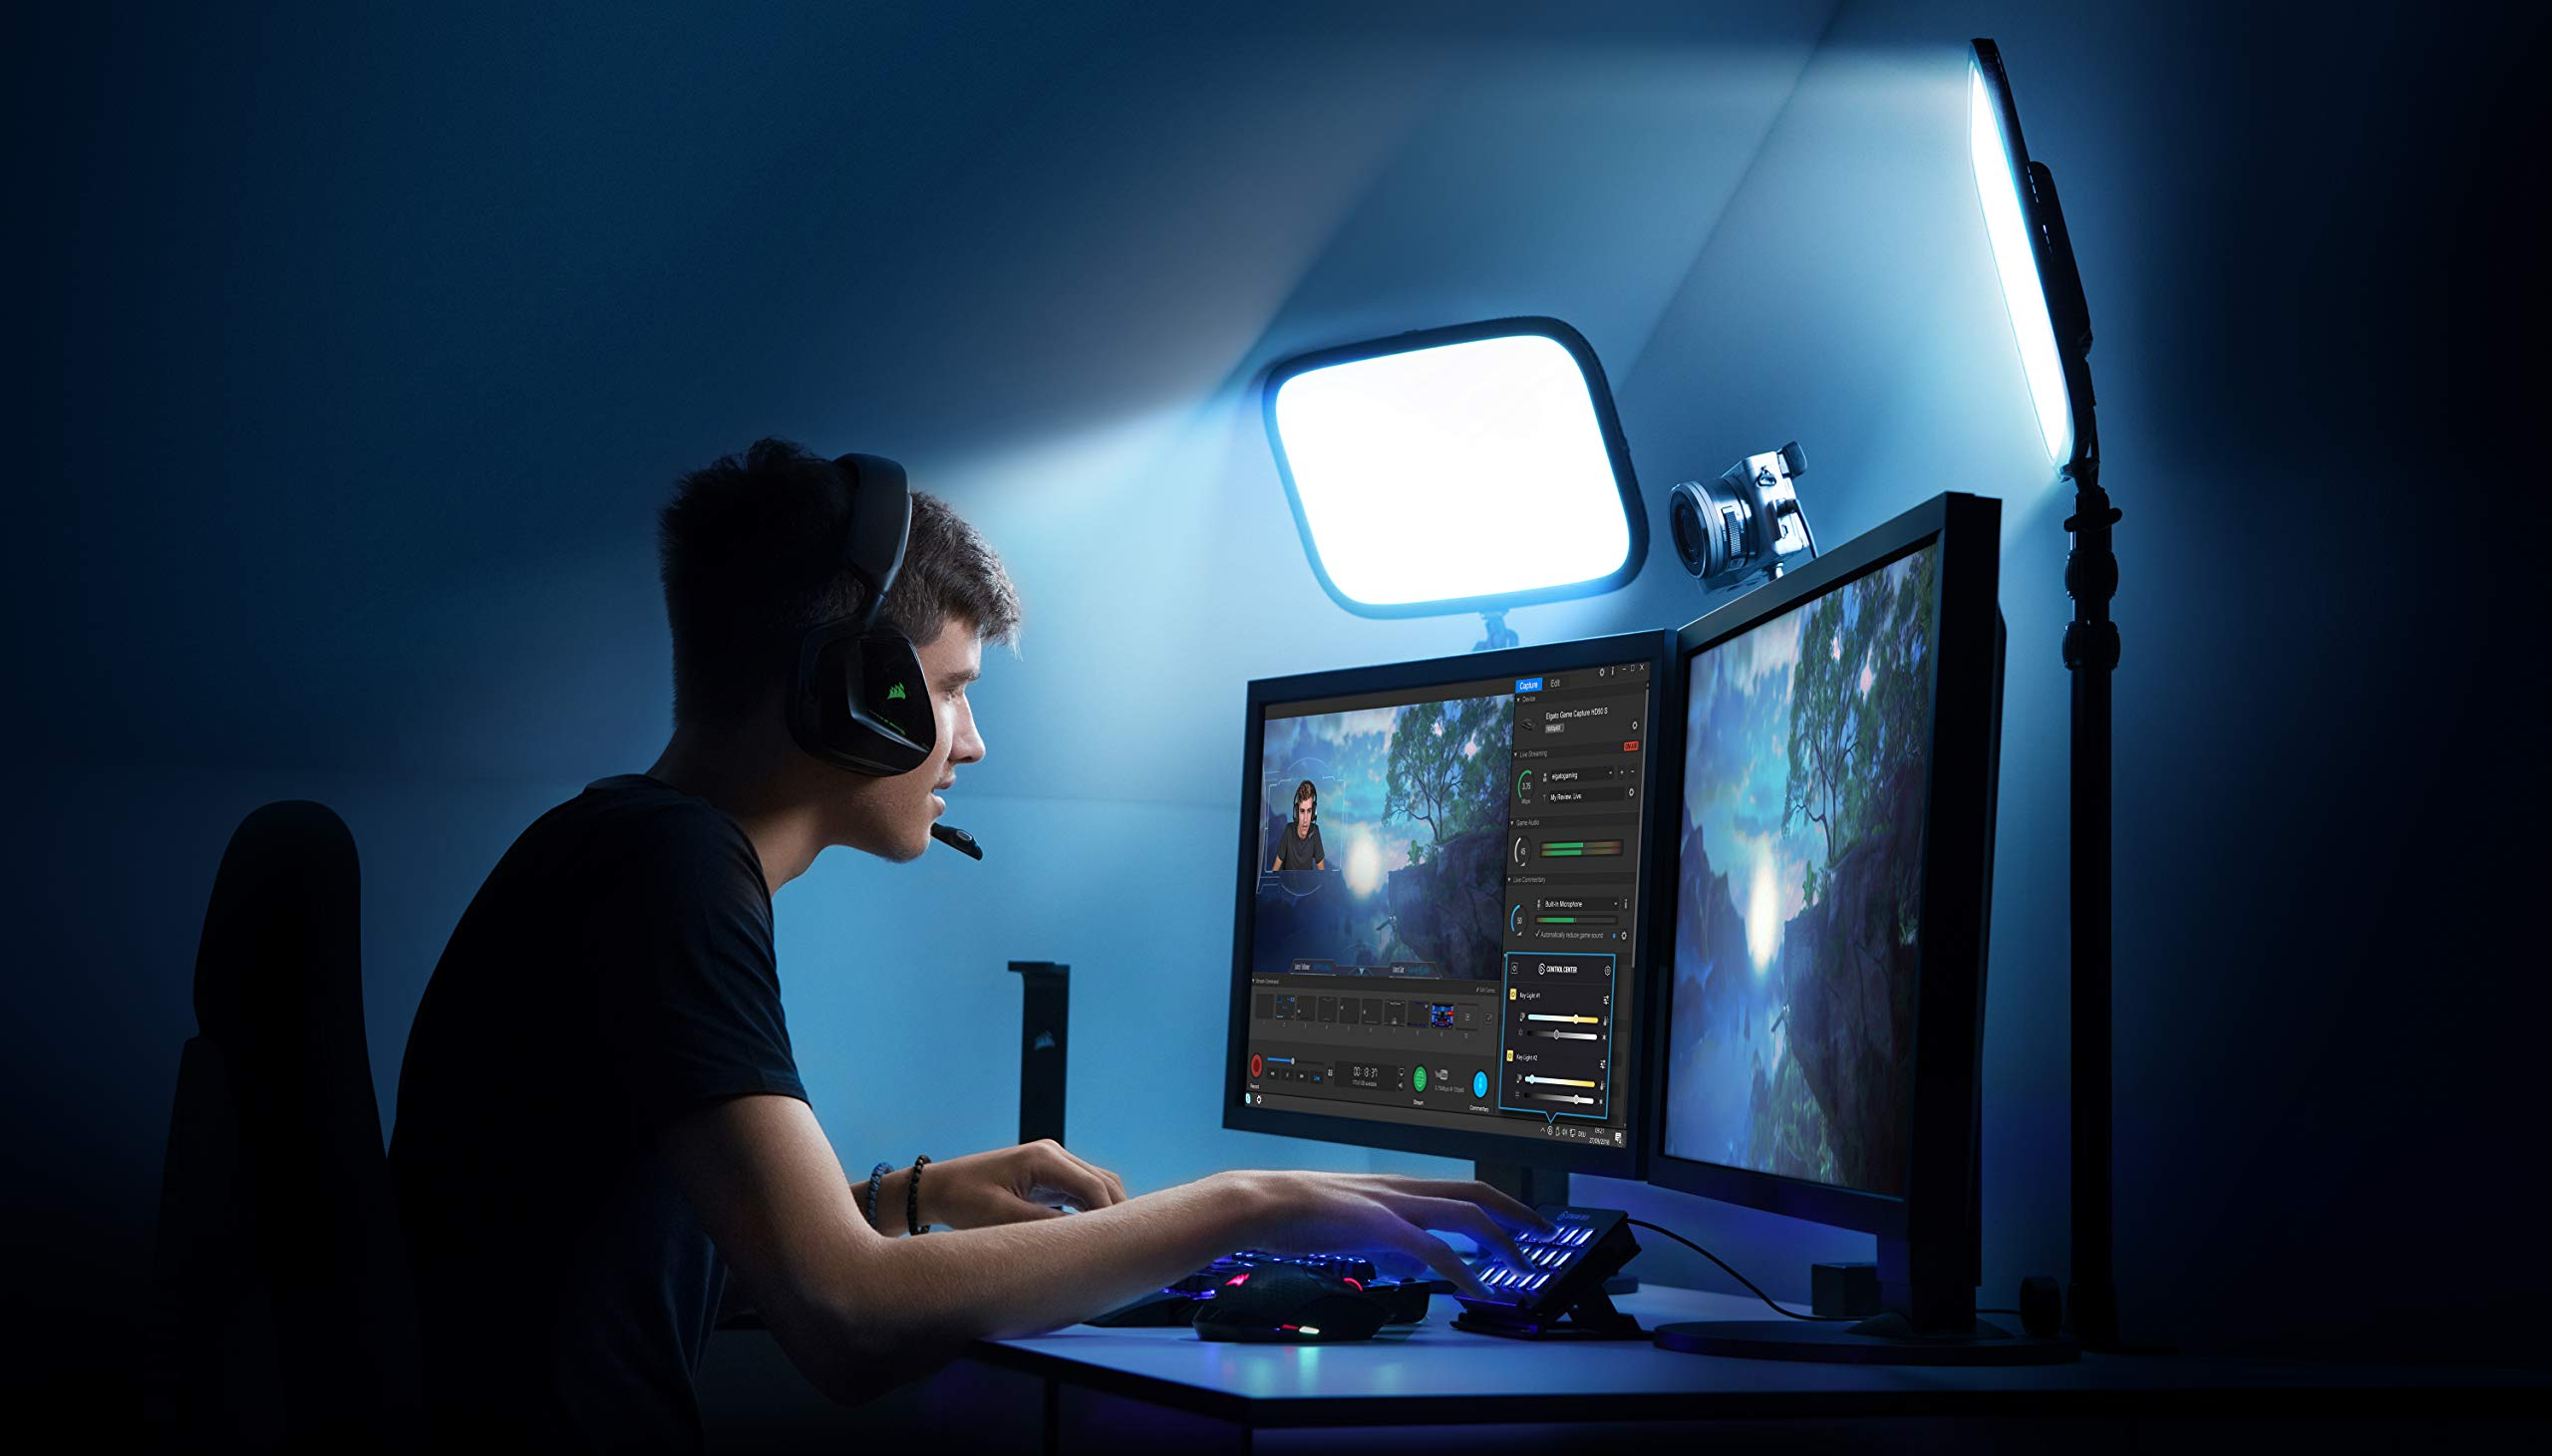 Elgato Key Light - Professional Studio LED Panel with 2500 Lumens, Color Adjustable, App-Enabled - PC and Mac by Corsair (Image #5)